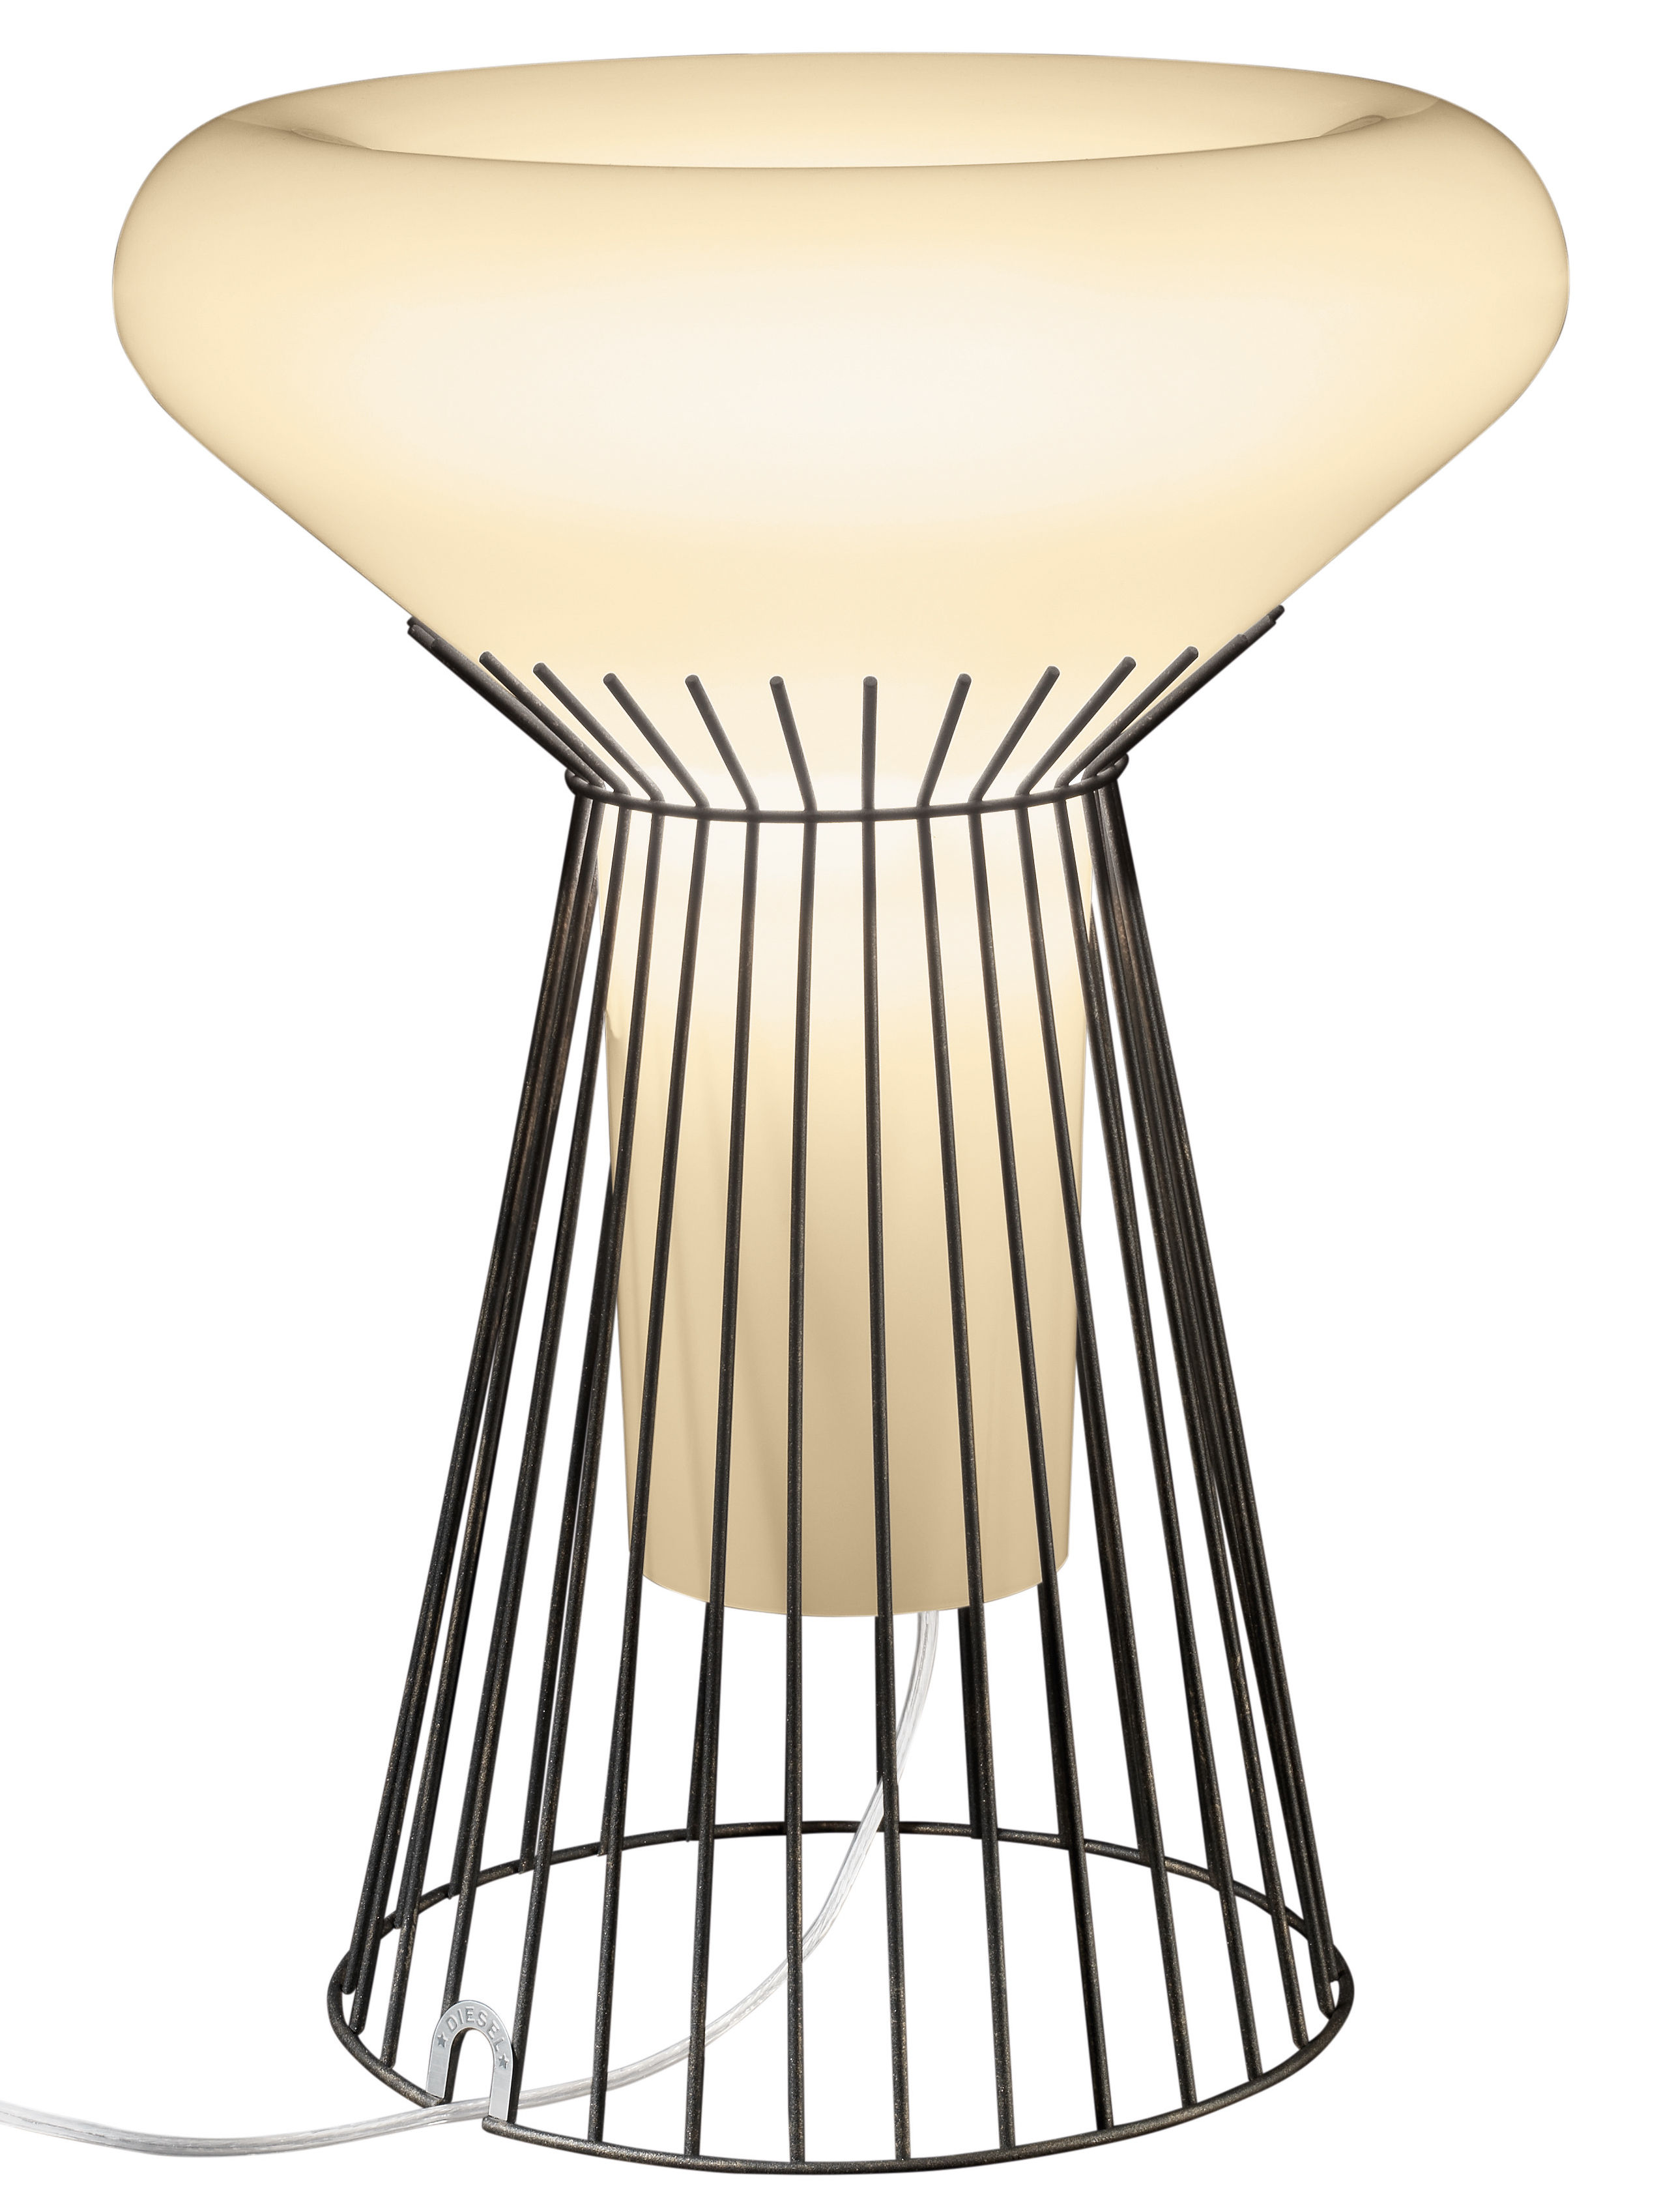 Lighting - Table Lamps - Metafisica Table lamp by Diesel with Foscarini - Ivory / Golden brown structure - Blown glass, Varnished steel